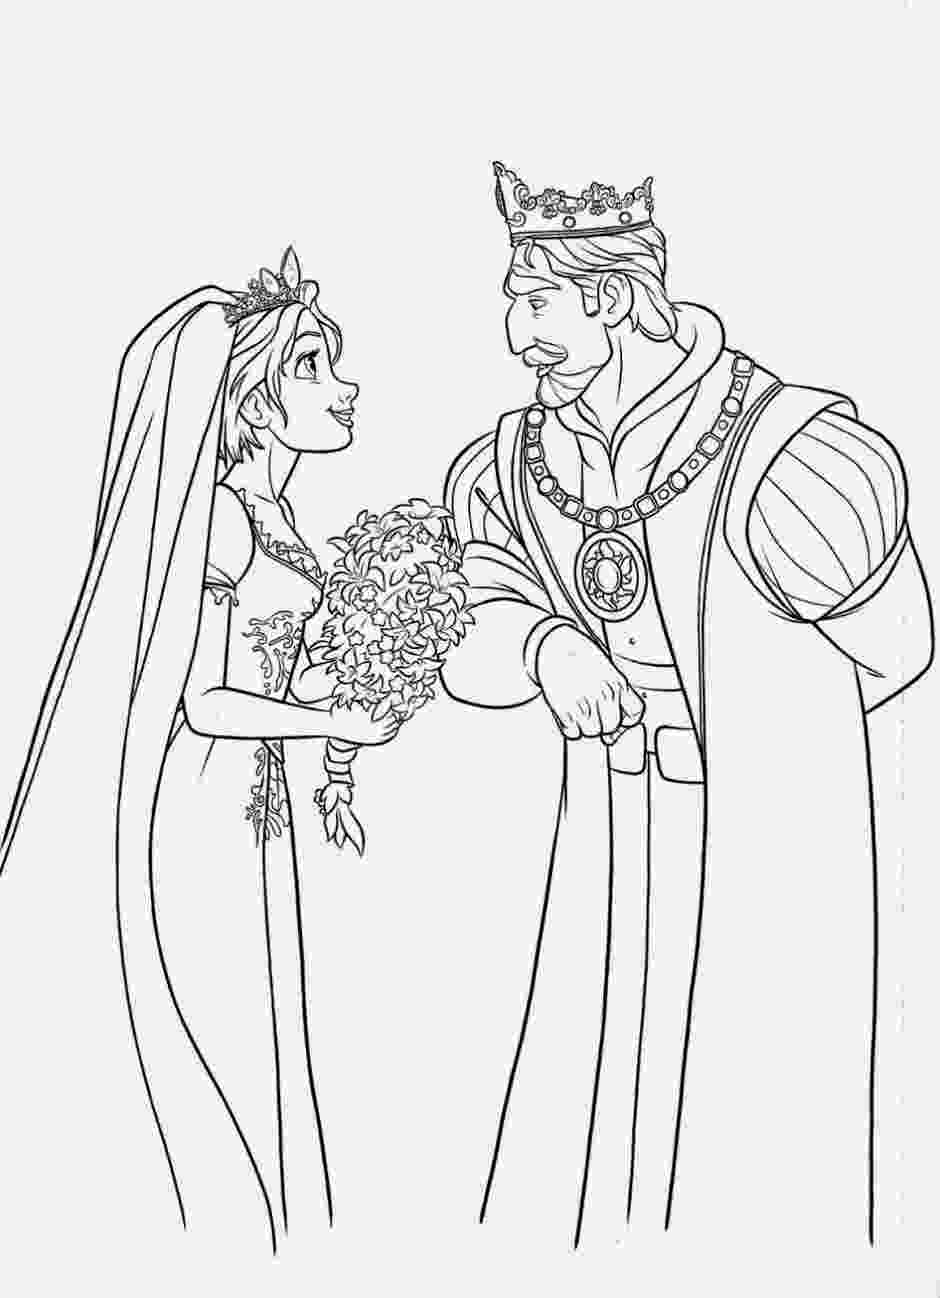 tangled coloring sheets coloring pages quottangledquot free printable coloring pages of sheets coloring tangled